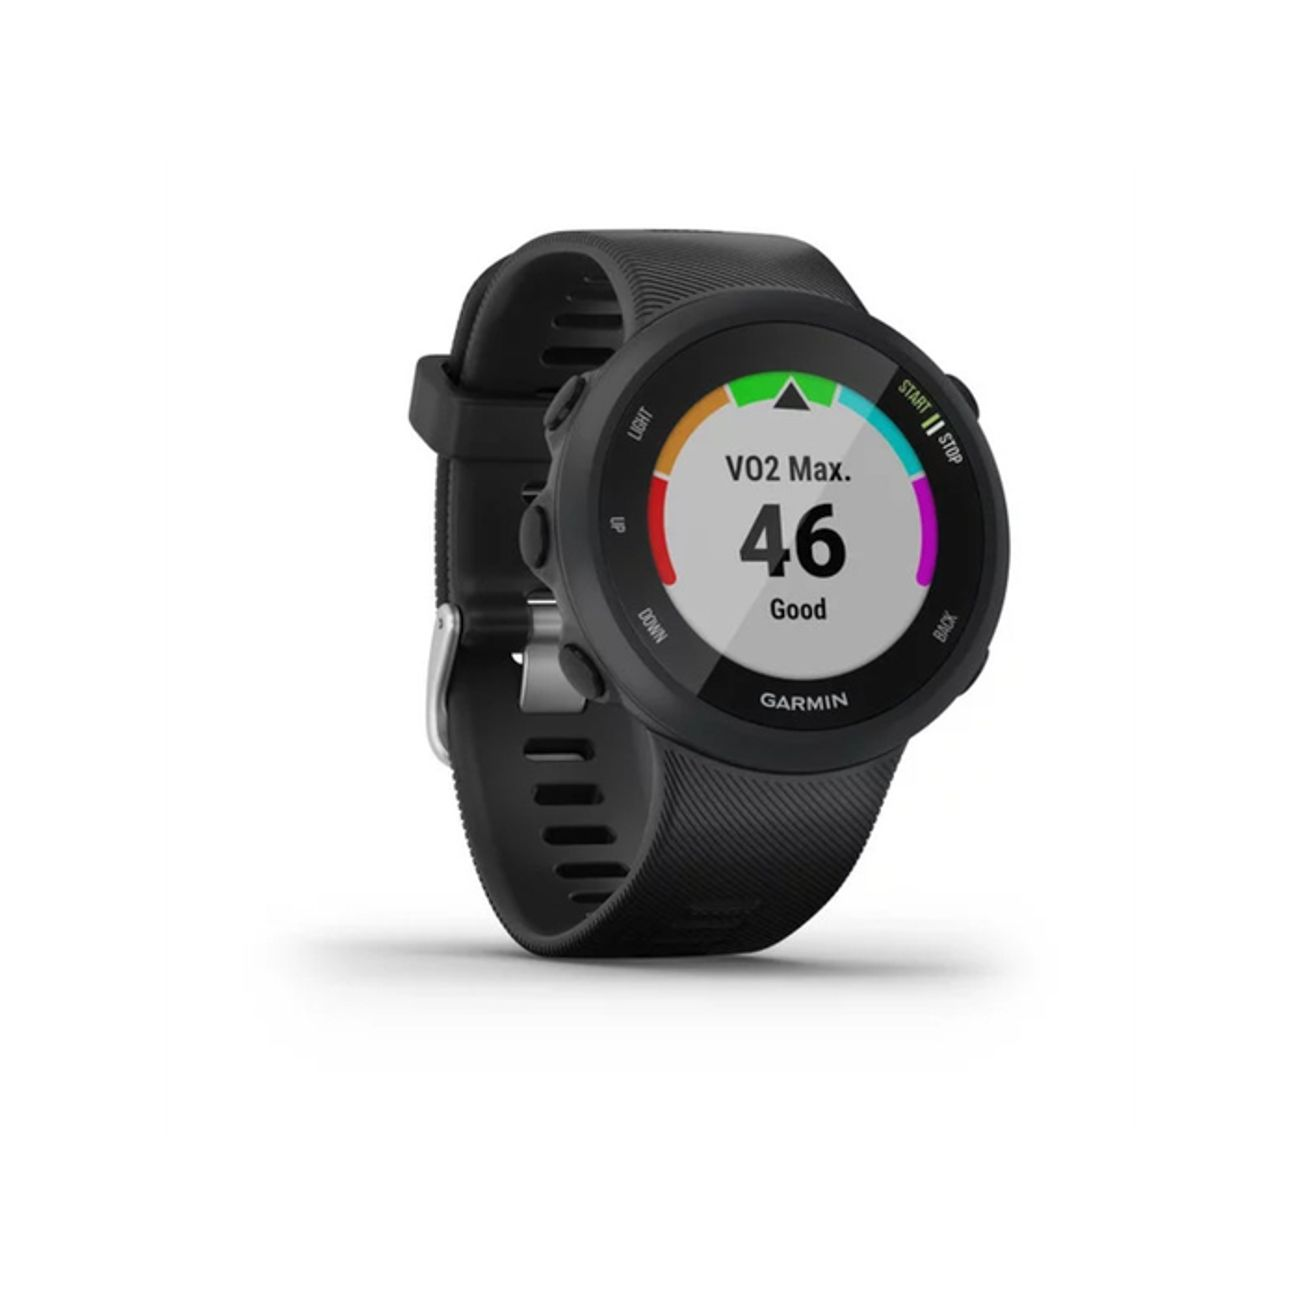 MONTRE CONNECTEE   GARMIN Montre connectée FORERUNNER 45 - Large Noir